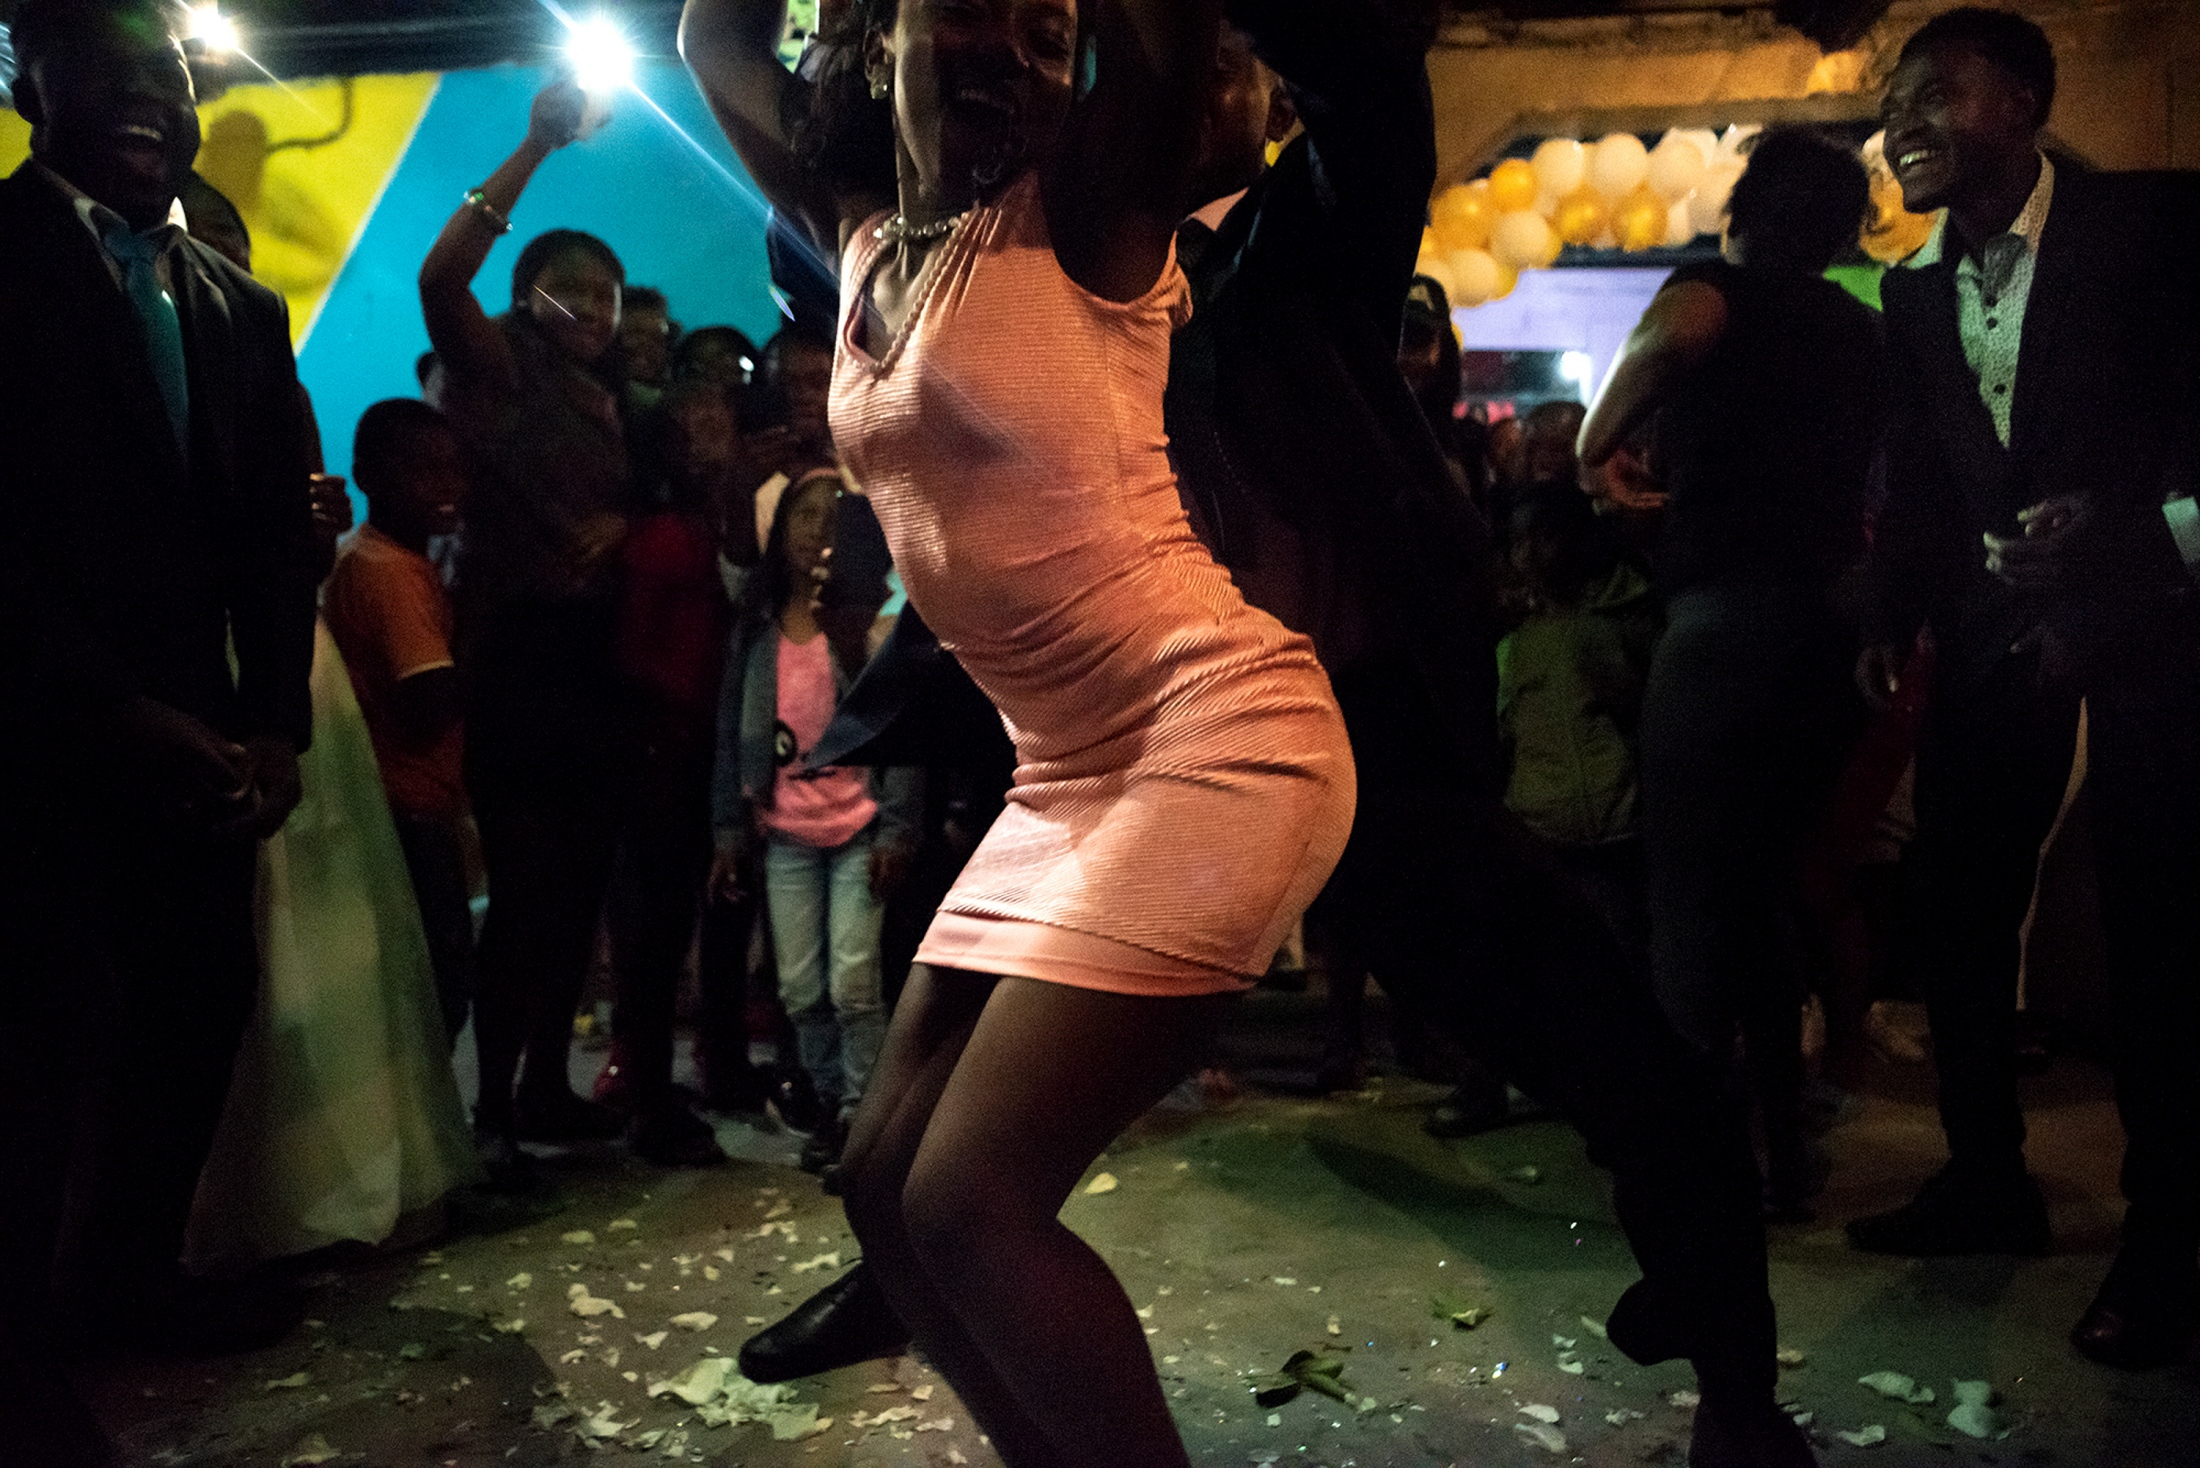 Revelers at a wedding reception. Juncal, Ecuador, 2018.  Johis Alarcón